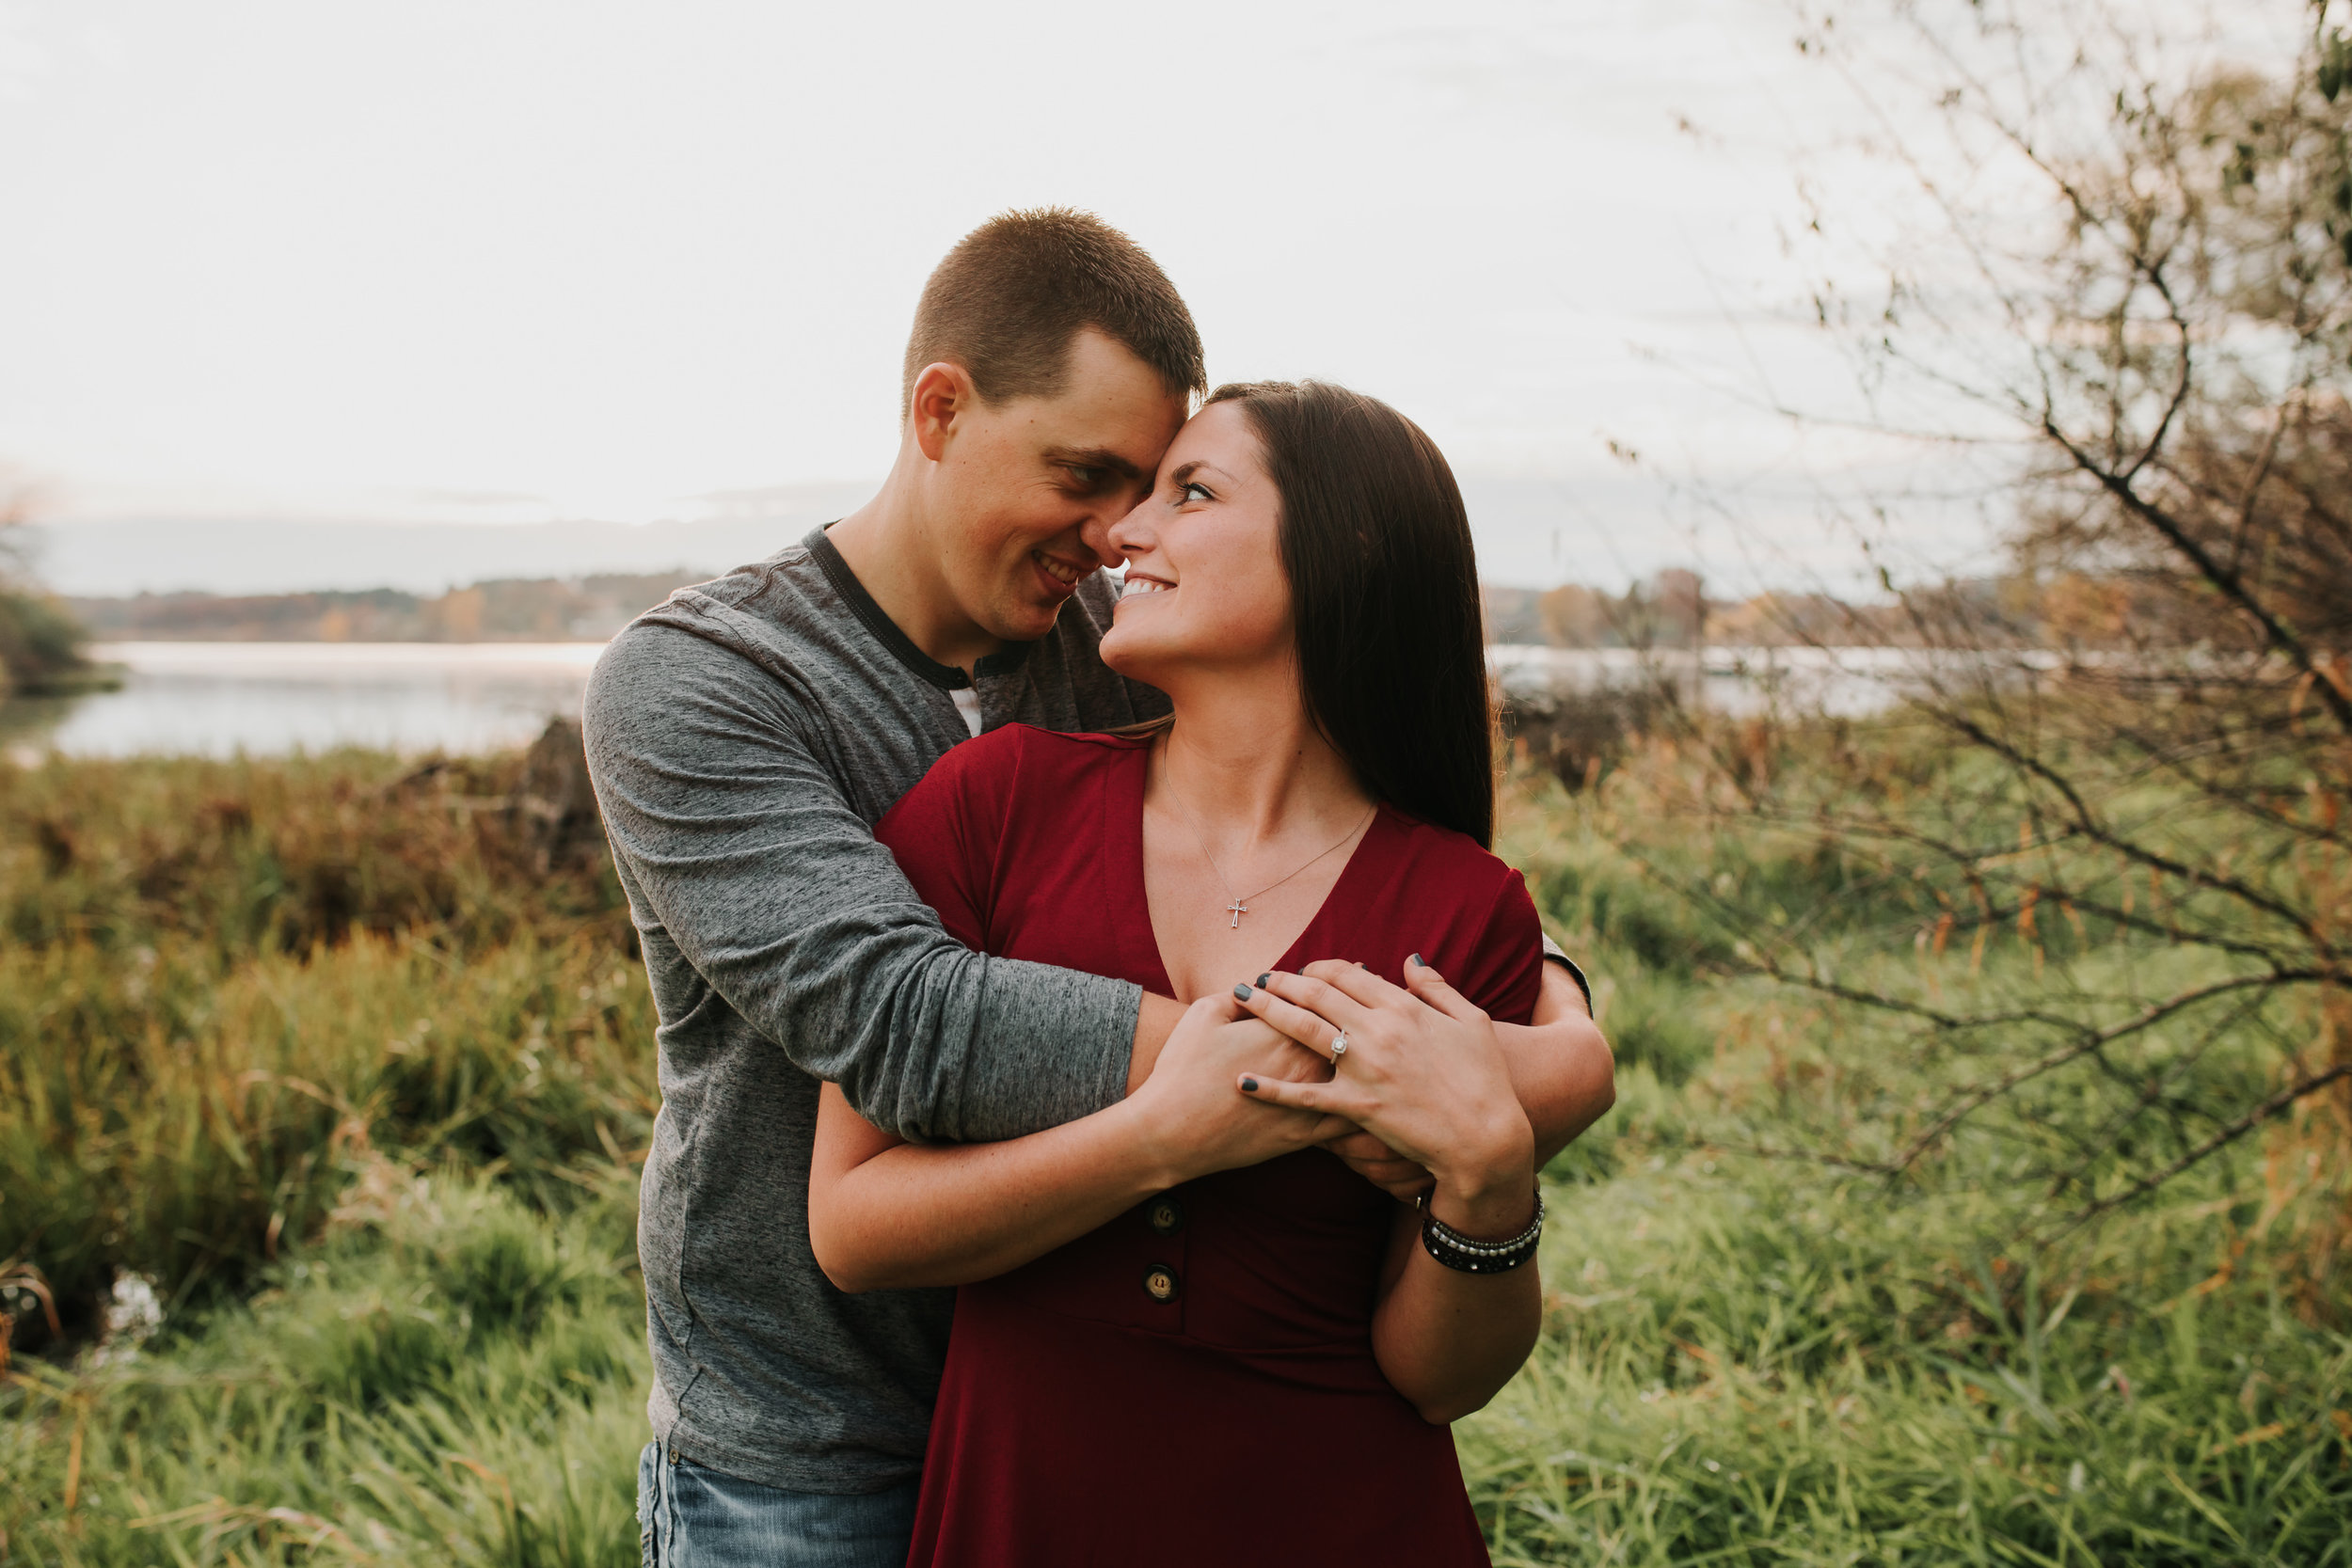 Hannah & Brett - Engaged - Nathaniel Jensen Photography - Omaha Nebraska Wedding Photograper - Omaha Nebraska Engagement Session - Chalco Hills Engagement Session-161.jpg